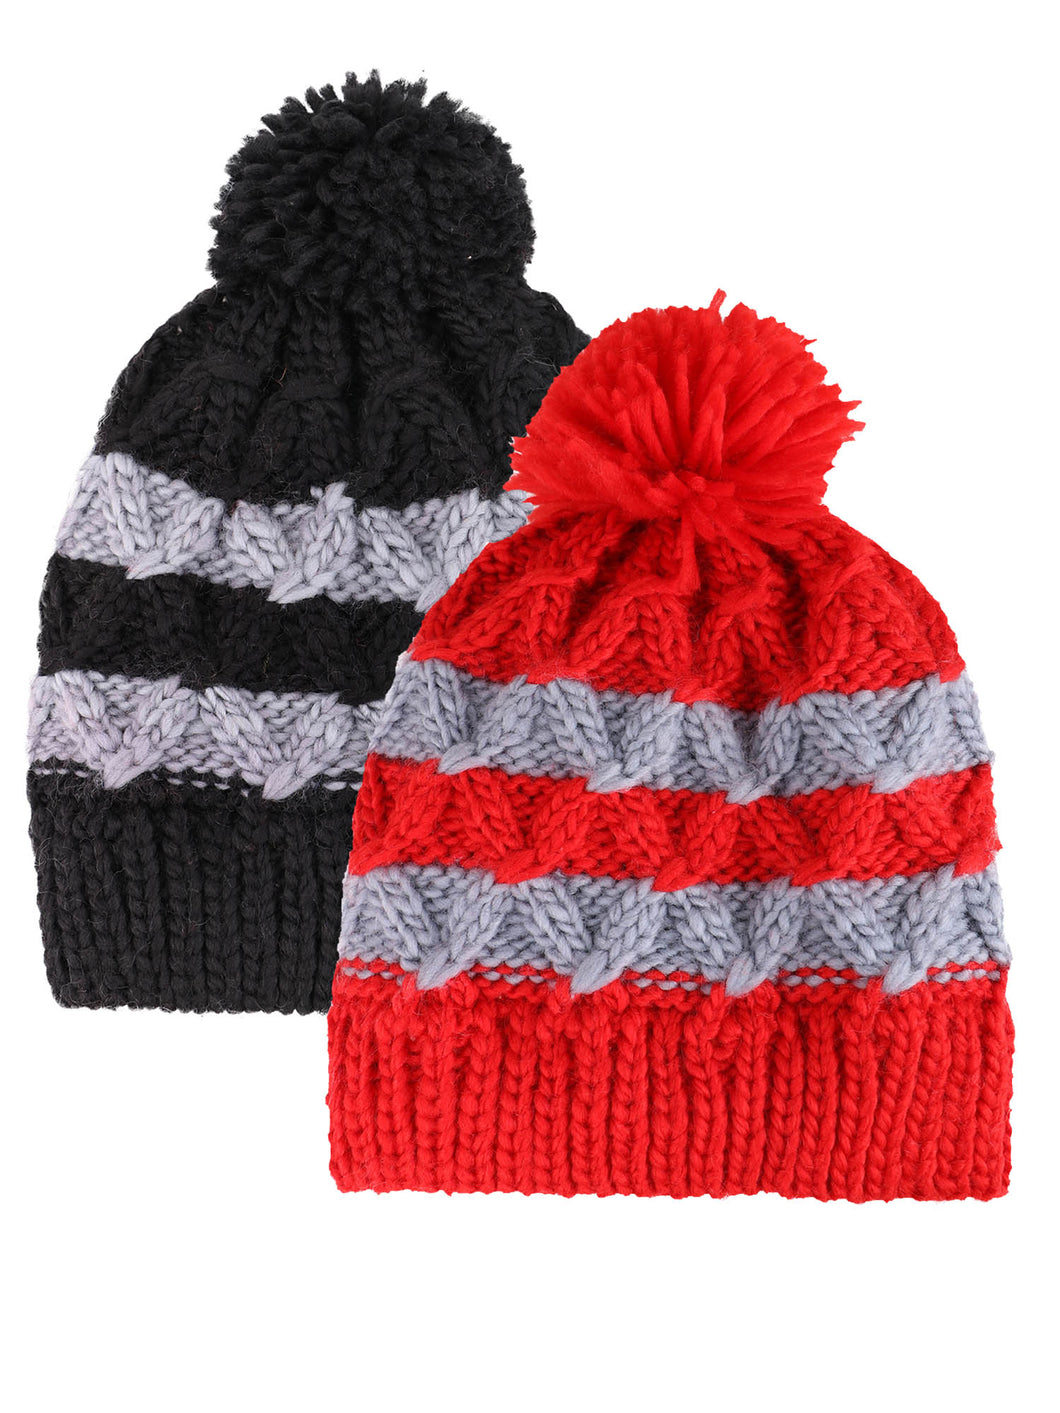 ARCTIC PAW Kids Chunky Cable Knit Beanie Winter Hat Ski Cap, Red Stripe/Black Stripe